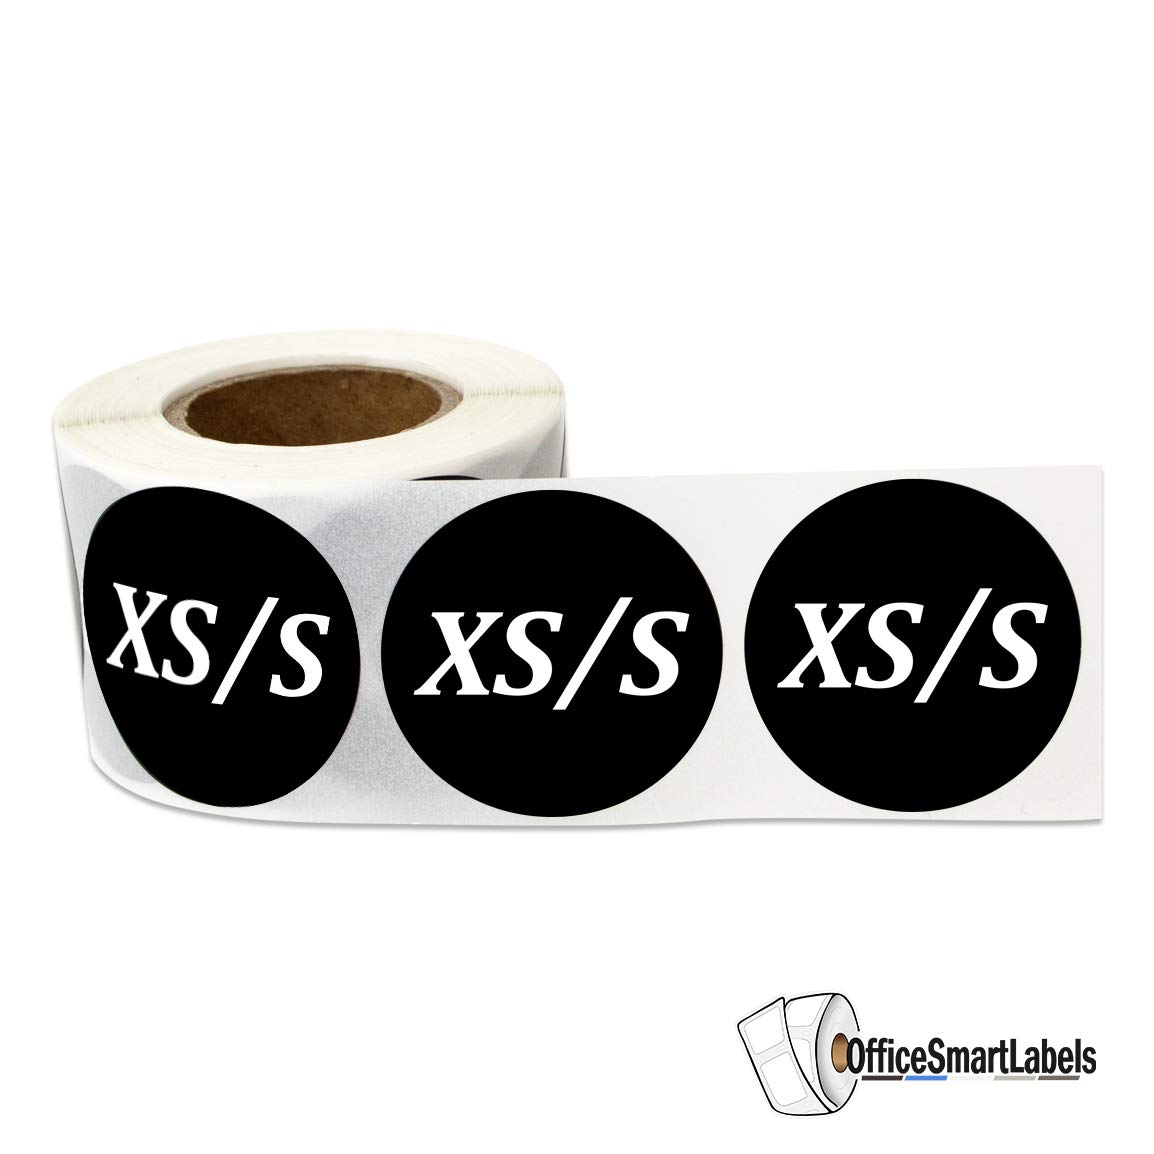 S 2700 Labels SOJITEK Size XS M XL Sticker Bundle for Retail Store Clothing Apparel Brand L 1.25 Inch Round Black - 9 Rolls